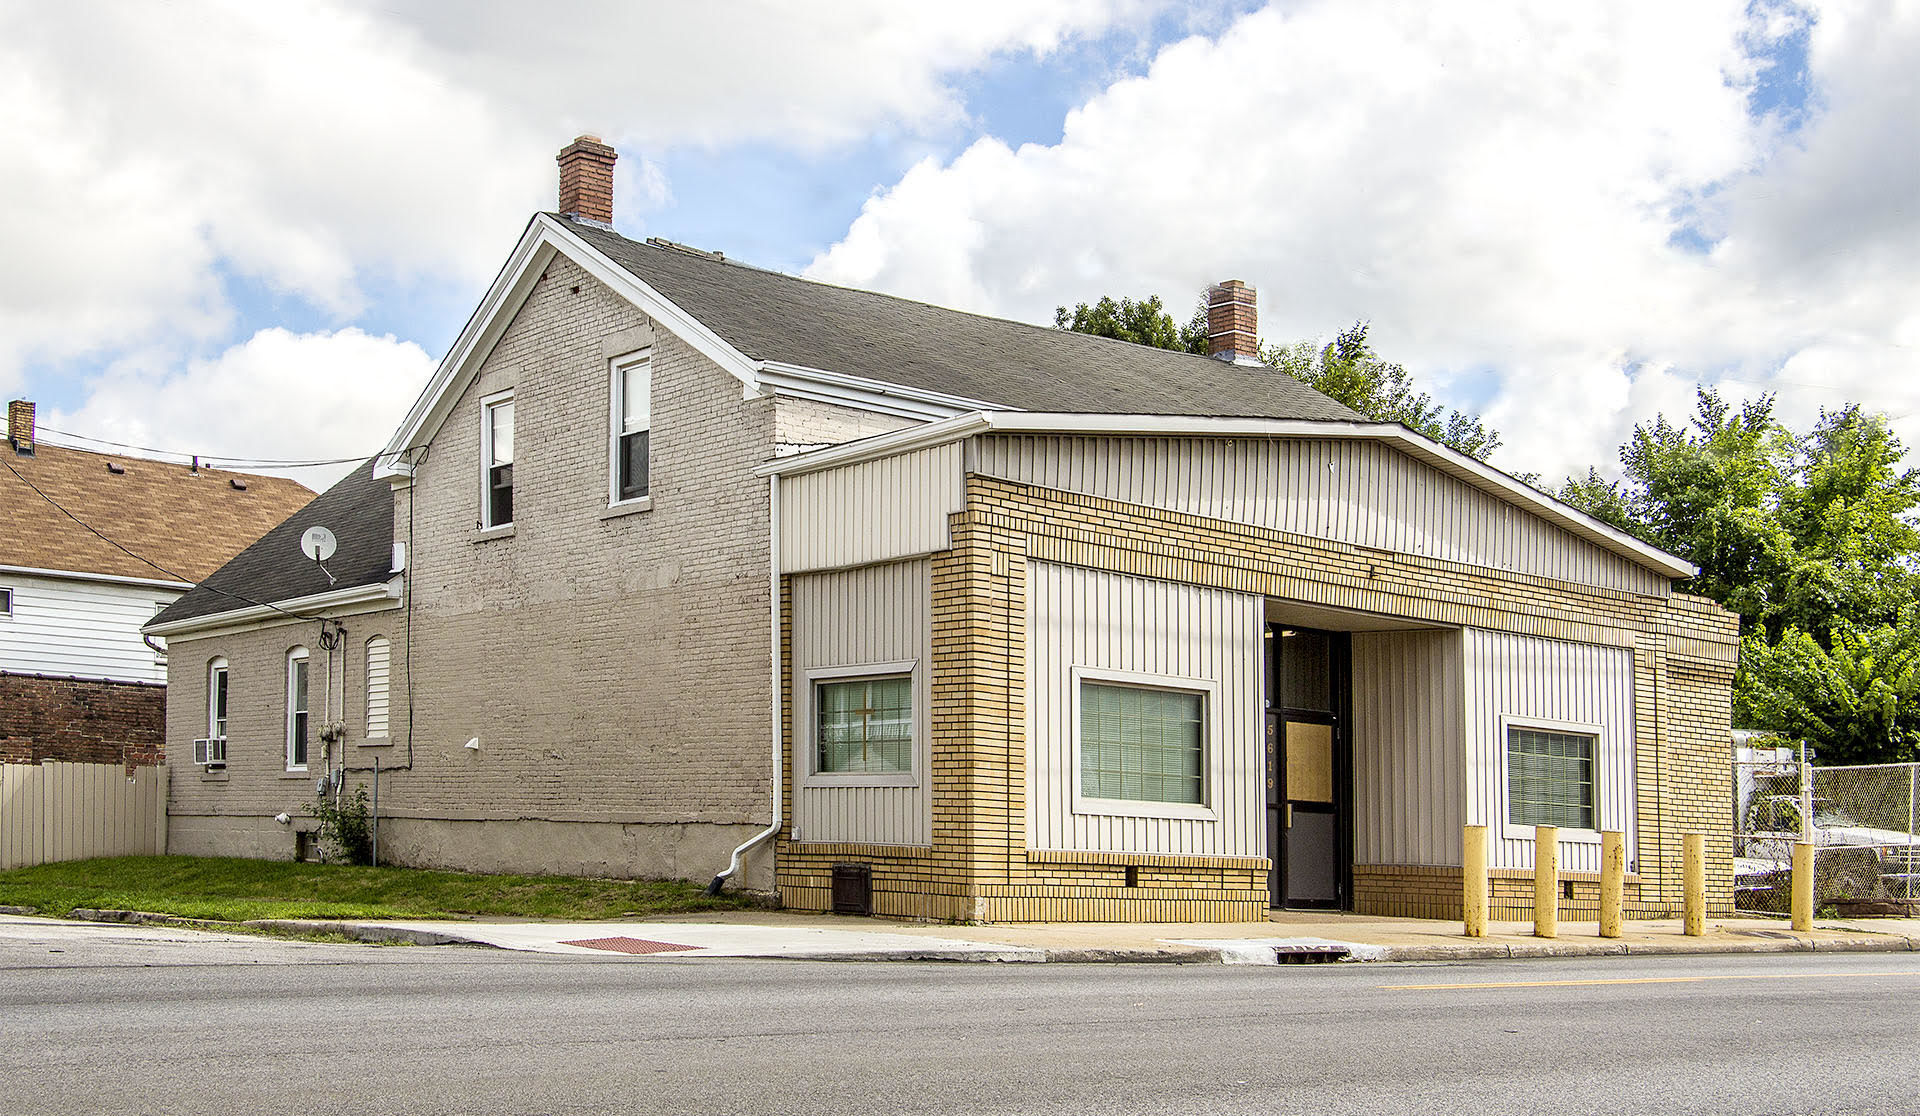 New Listing – Retail storefront with 3 apartments